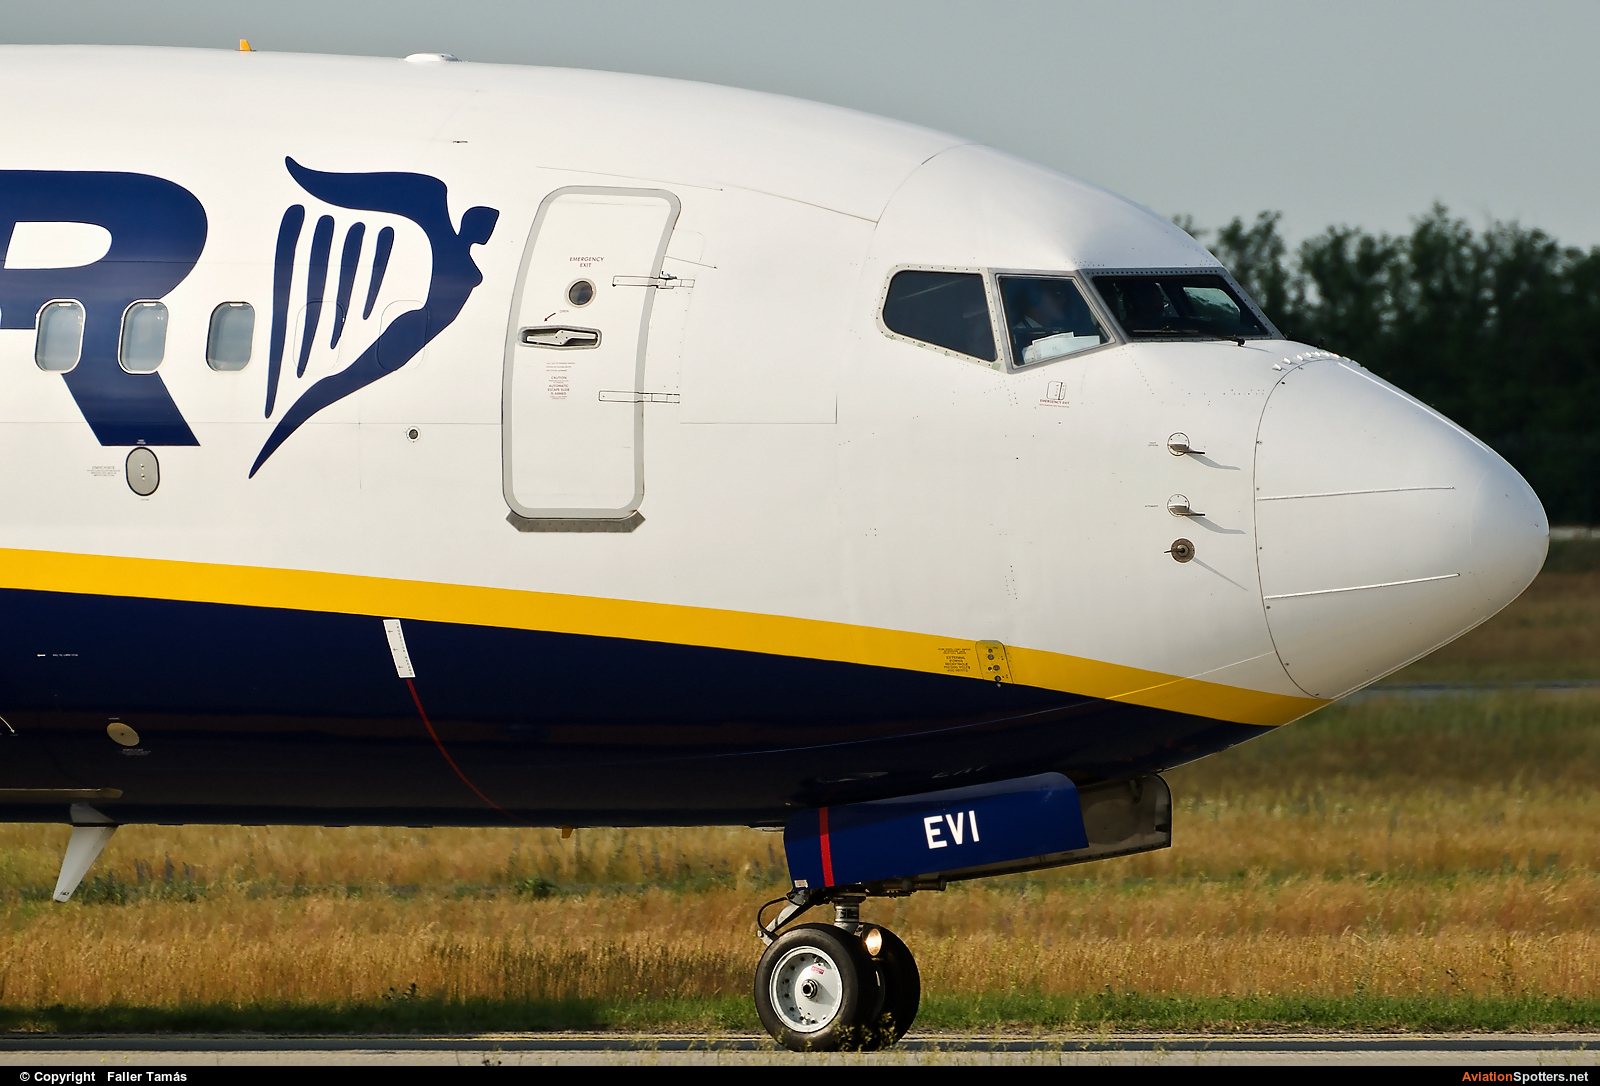 Ryanair  -  737-8AS  (EI-EVI) By Faller Tamás (fallto78)